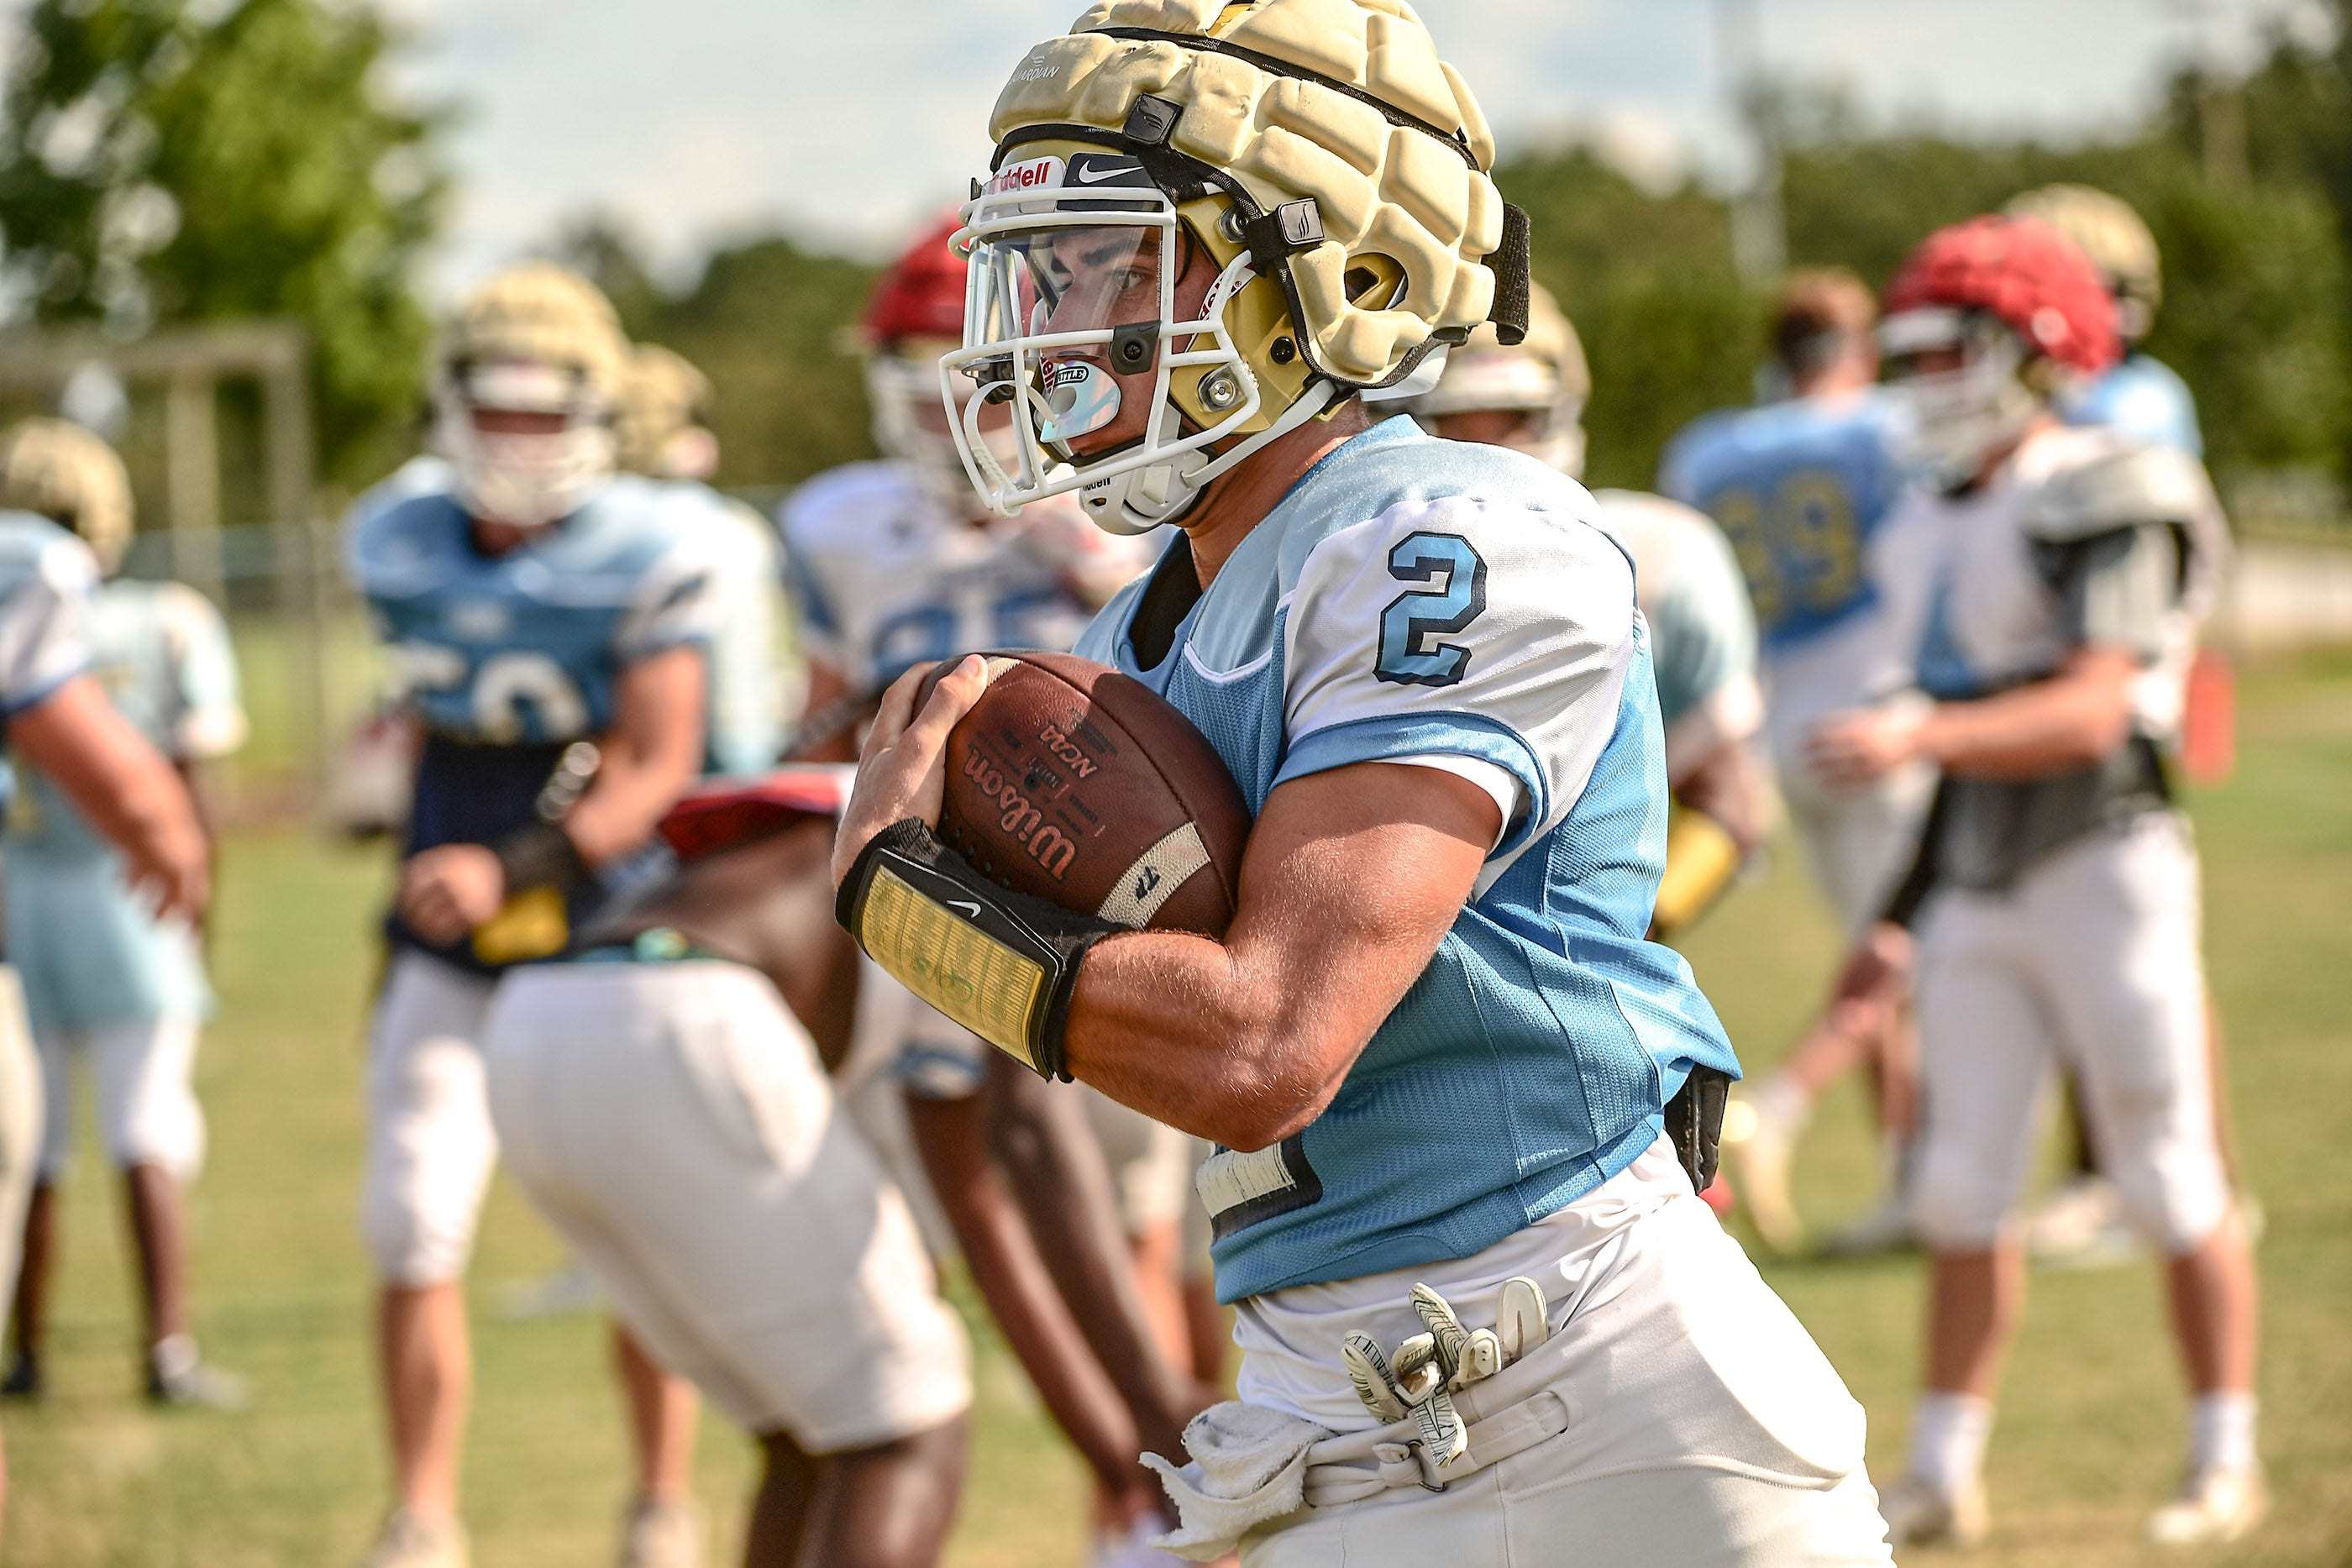 D.W. Daniel High School quarterback Jackson Crosby runs with the ball during practice in September 2020.